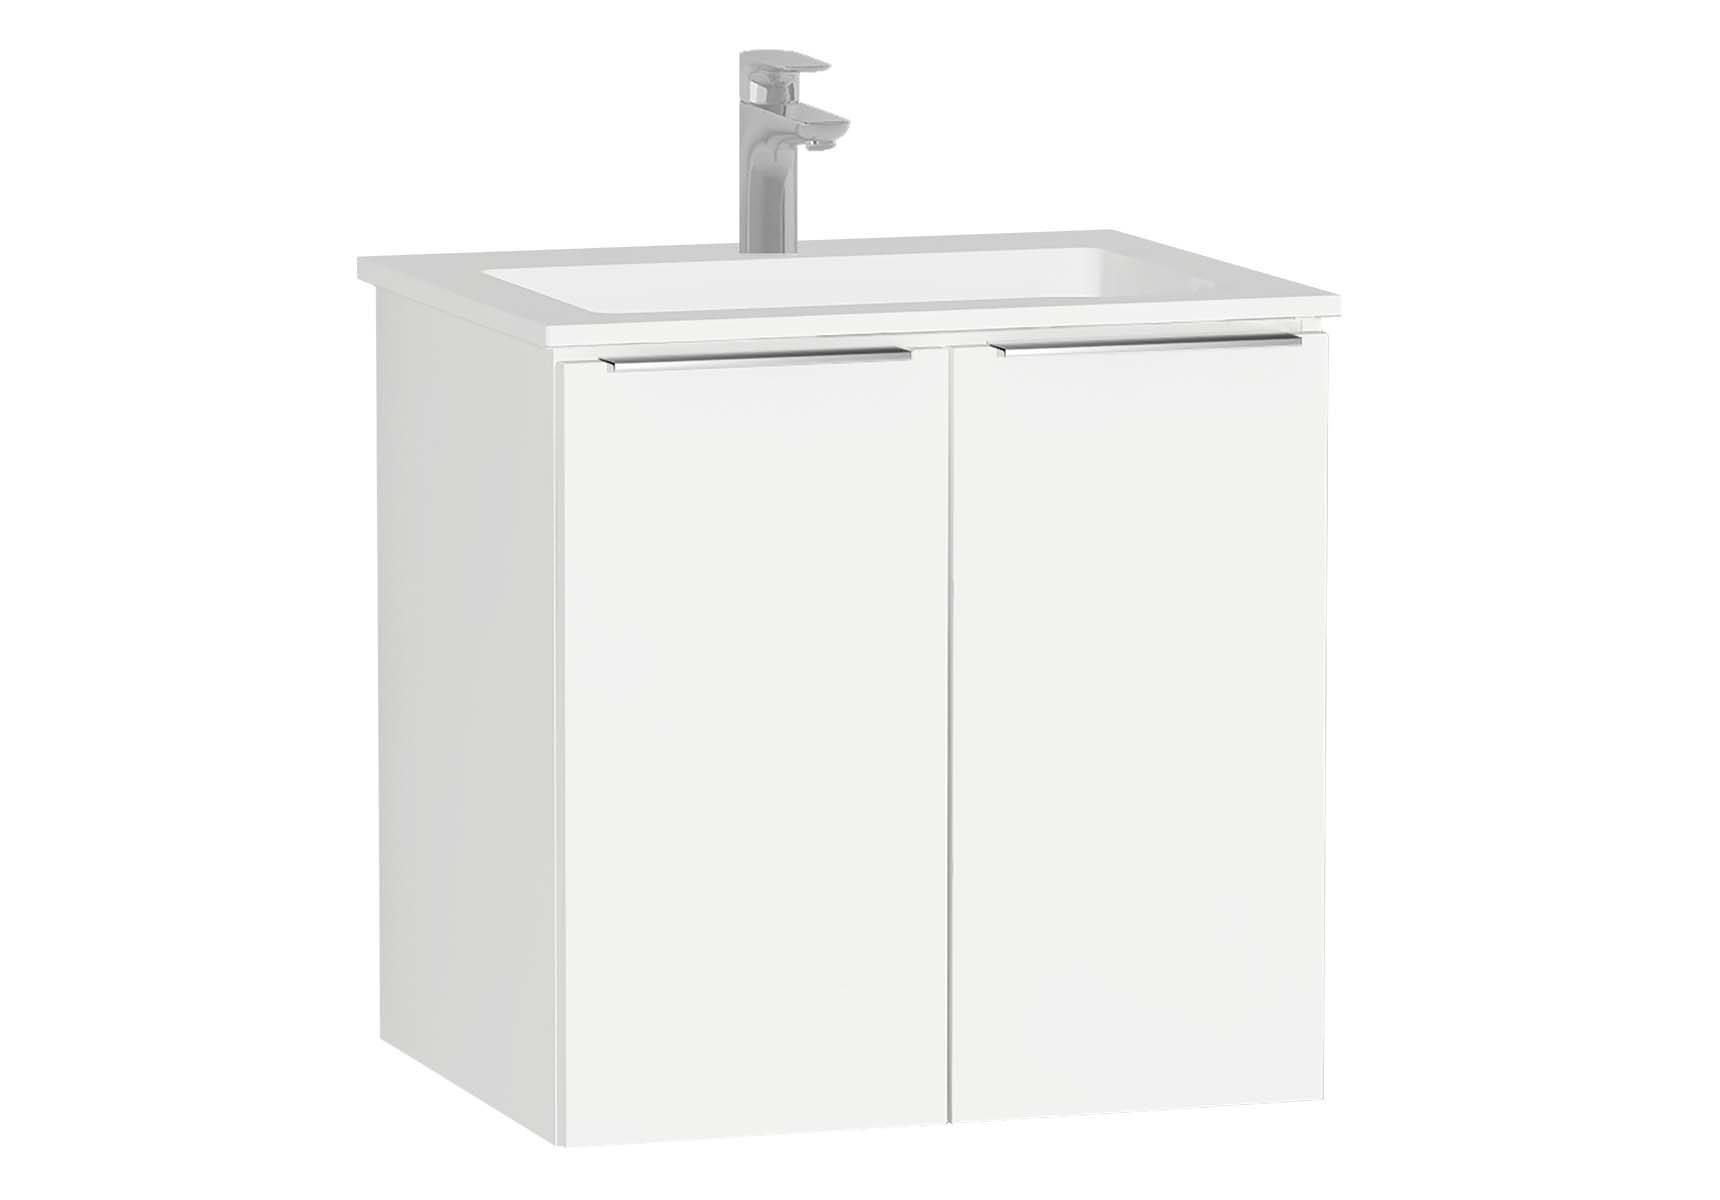 Central Washbasin Unit with doors, 60 cm, White High Gloss, Infinit Washbasin